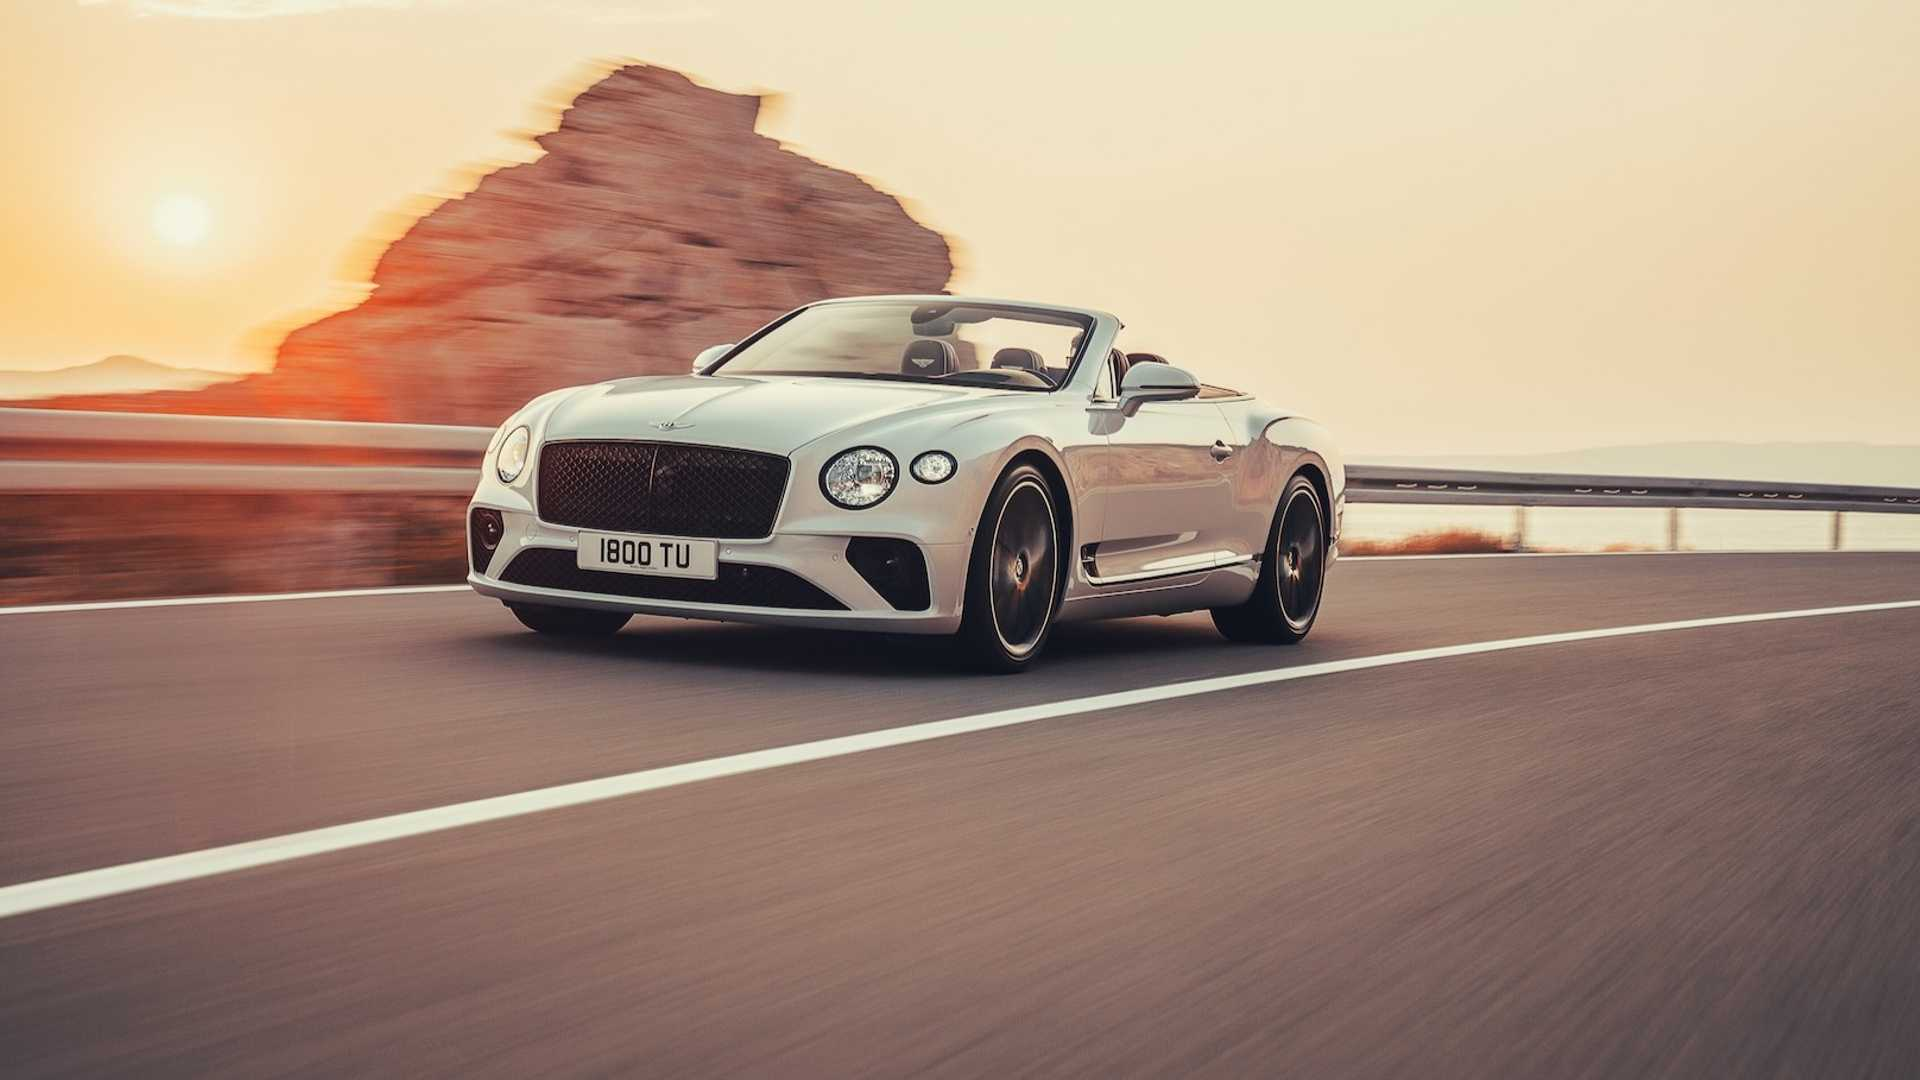 2019-bentley-continental-gt-convertible-unveiled-207-mph-luxury-droptop (4)